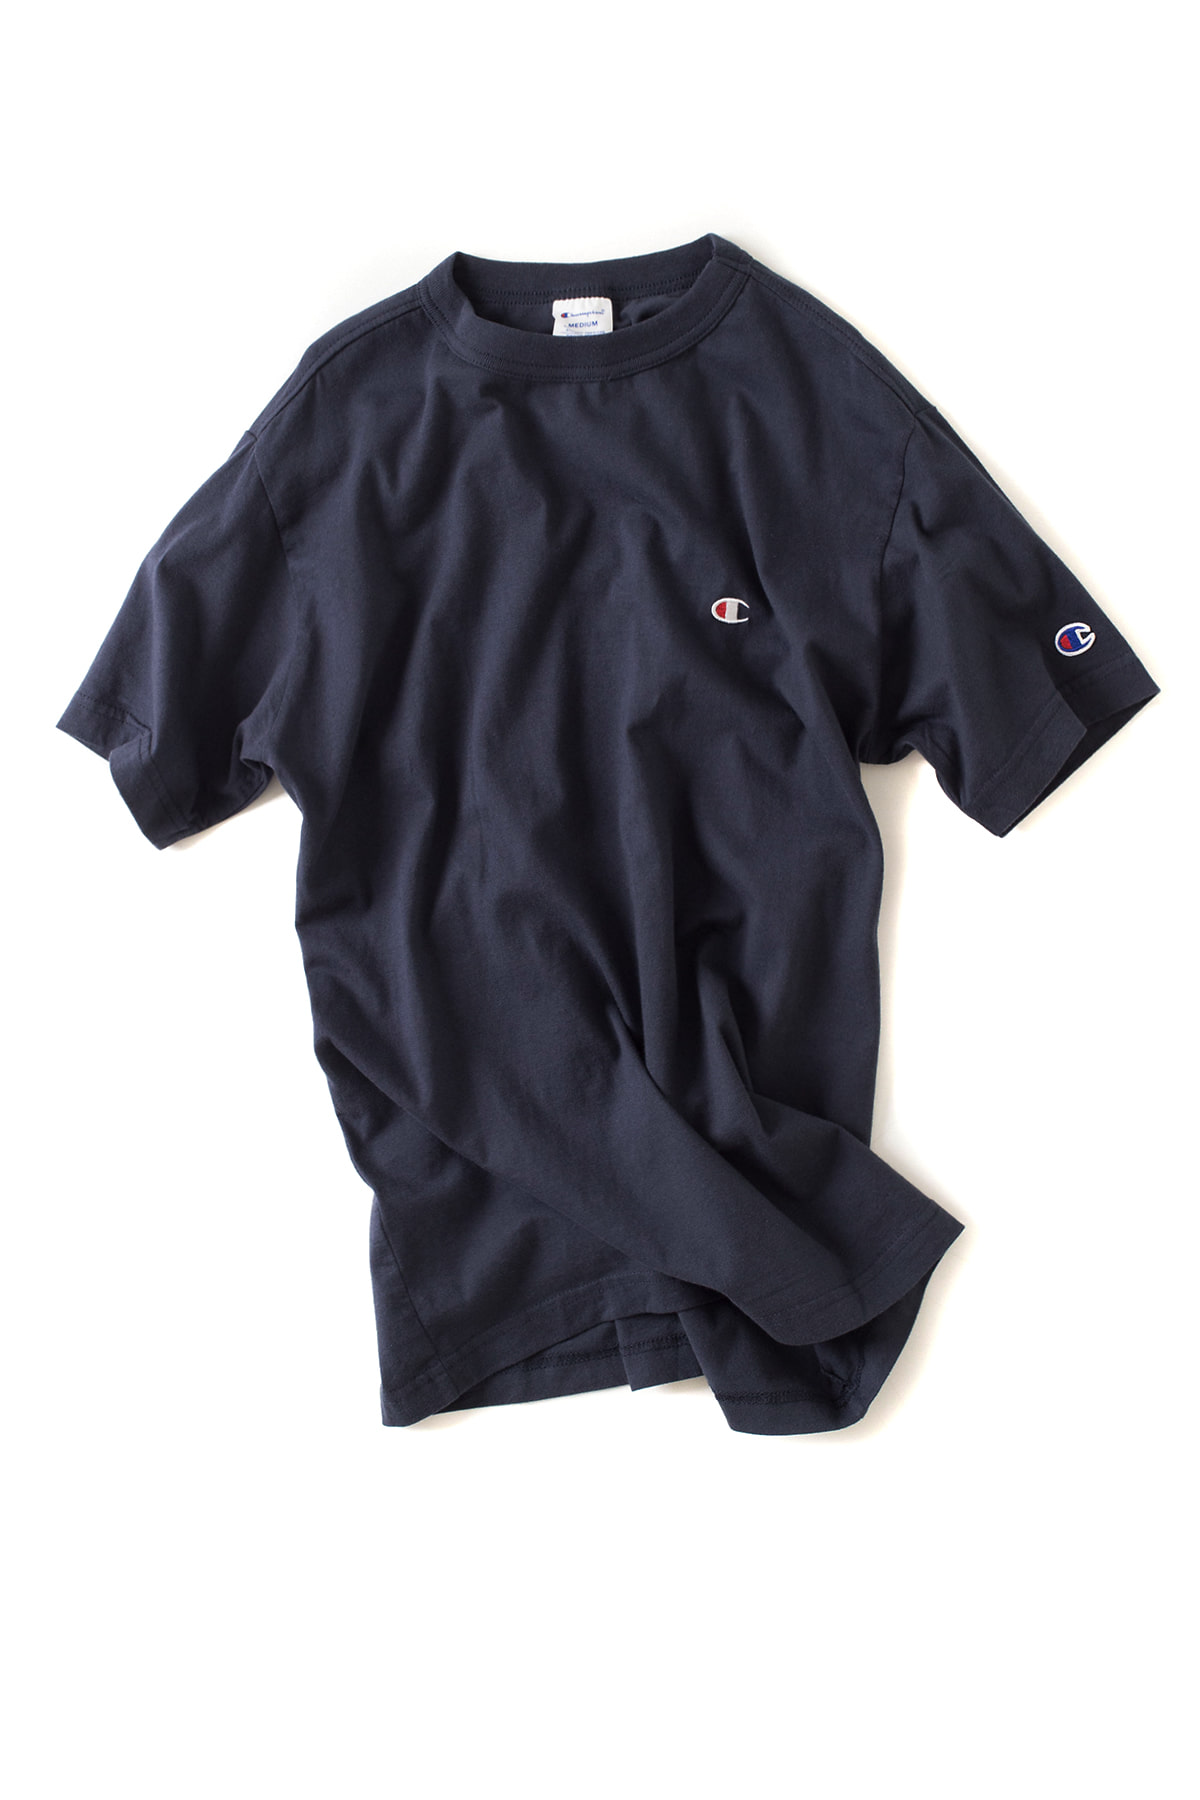 Champion : Basic T-Shirt (Navy)